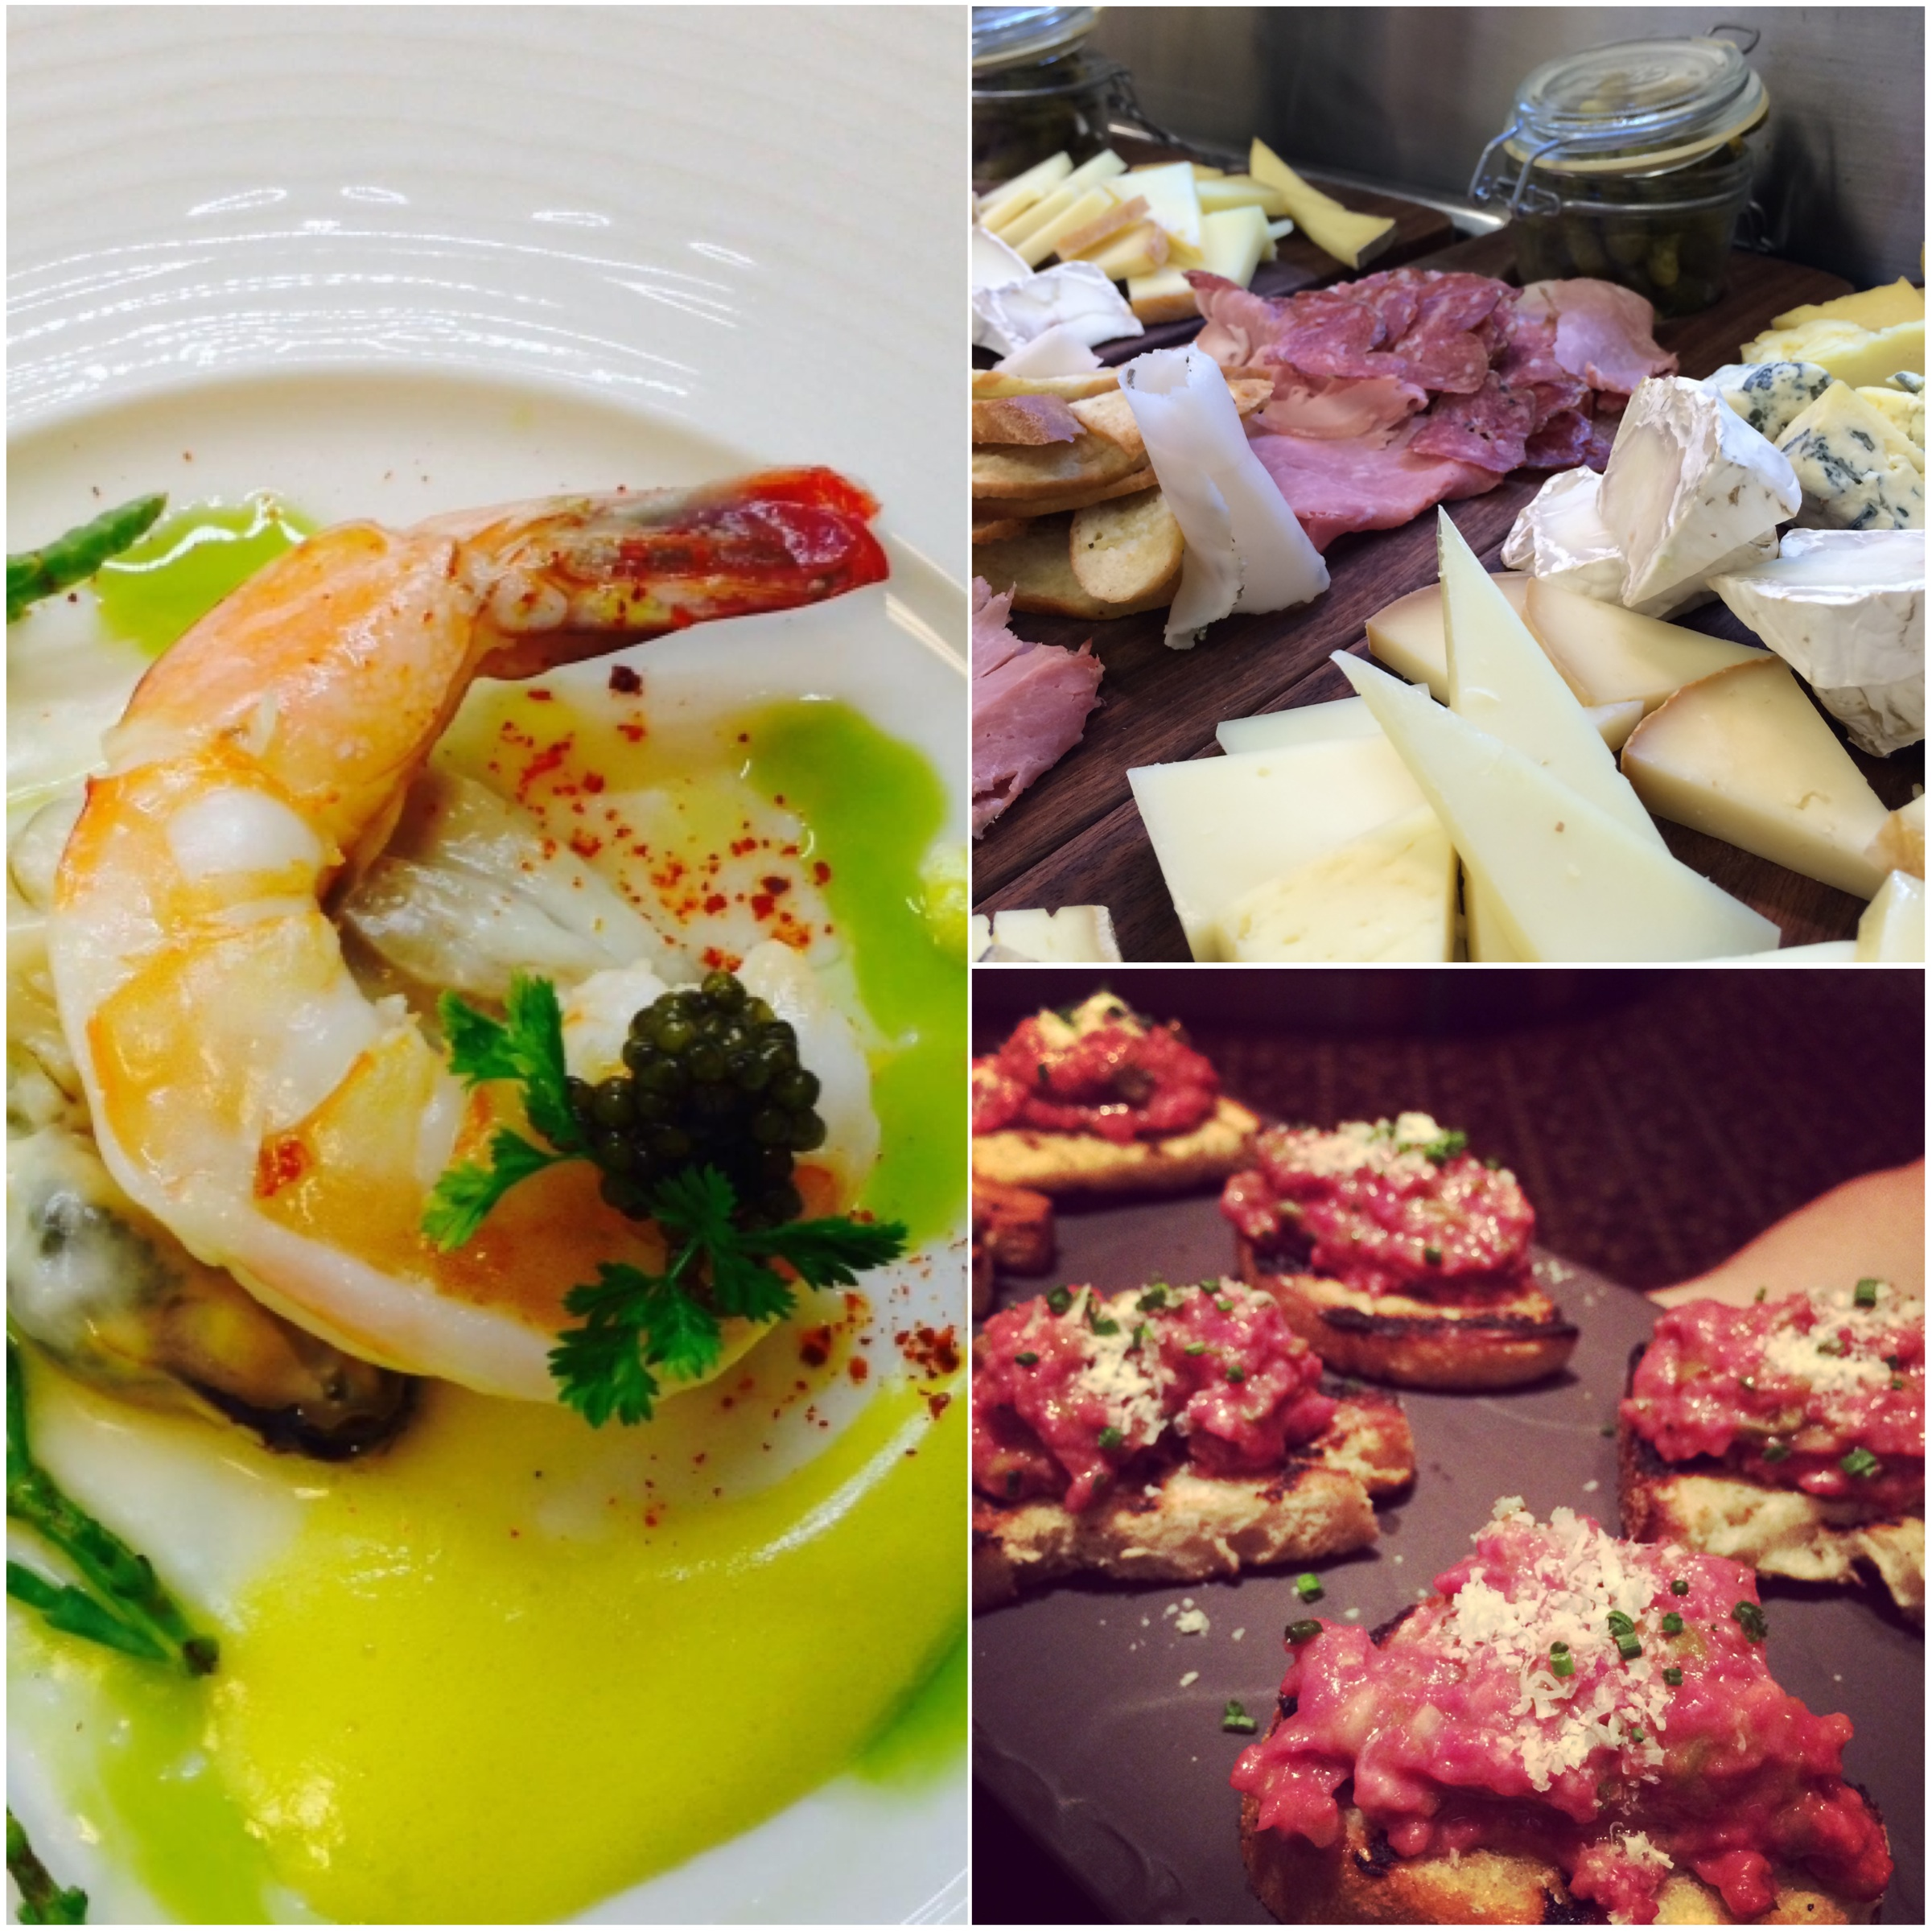 CommeCa's menu featured Jumbo Prawns and Caviar, Cheese and Charcuterie, and the most incredible Steak Tartar Crostini I have ever had in my life.  Photo Courtesy of Andrea Eppolito.